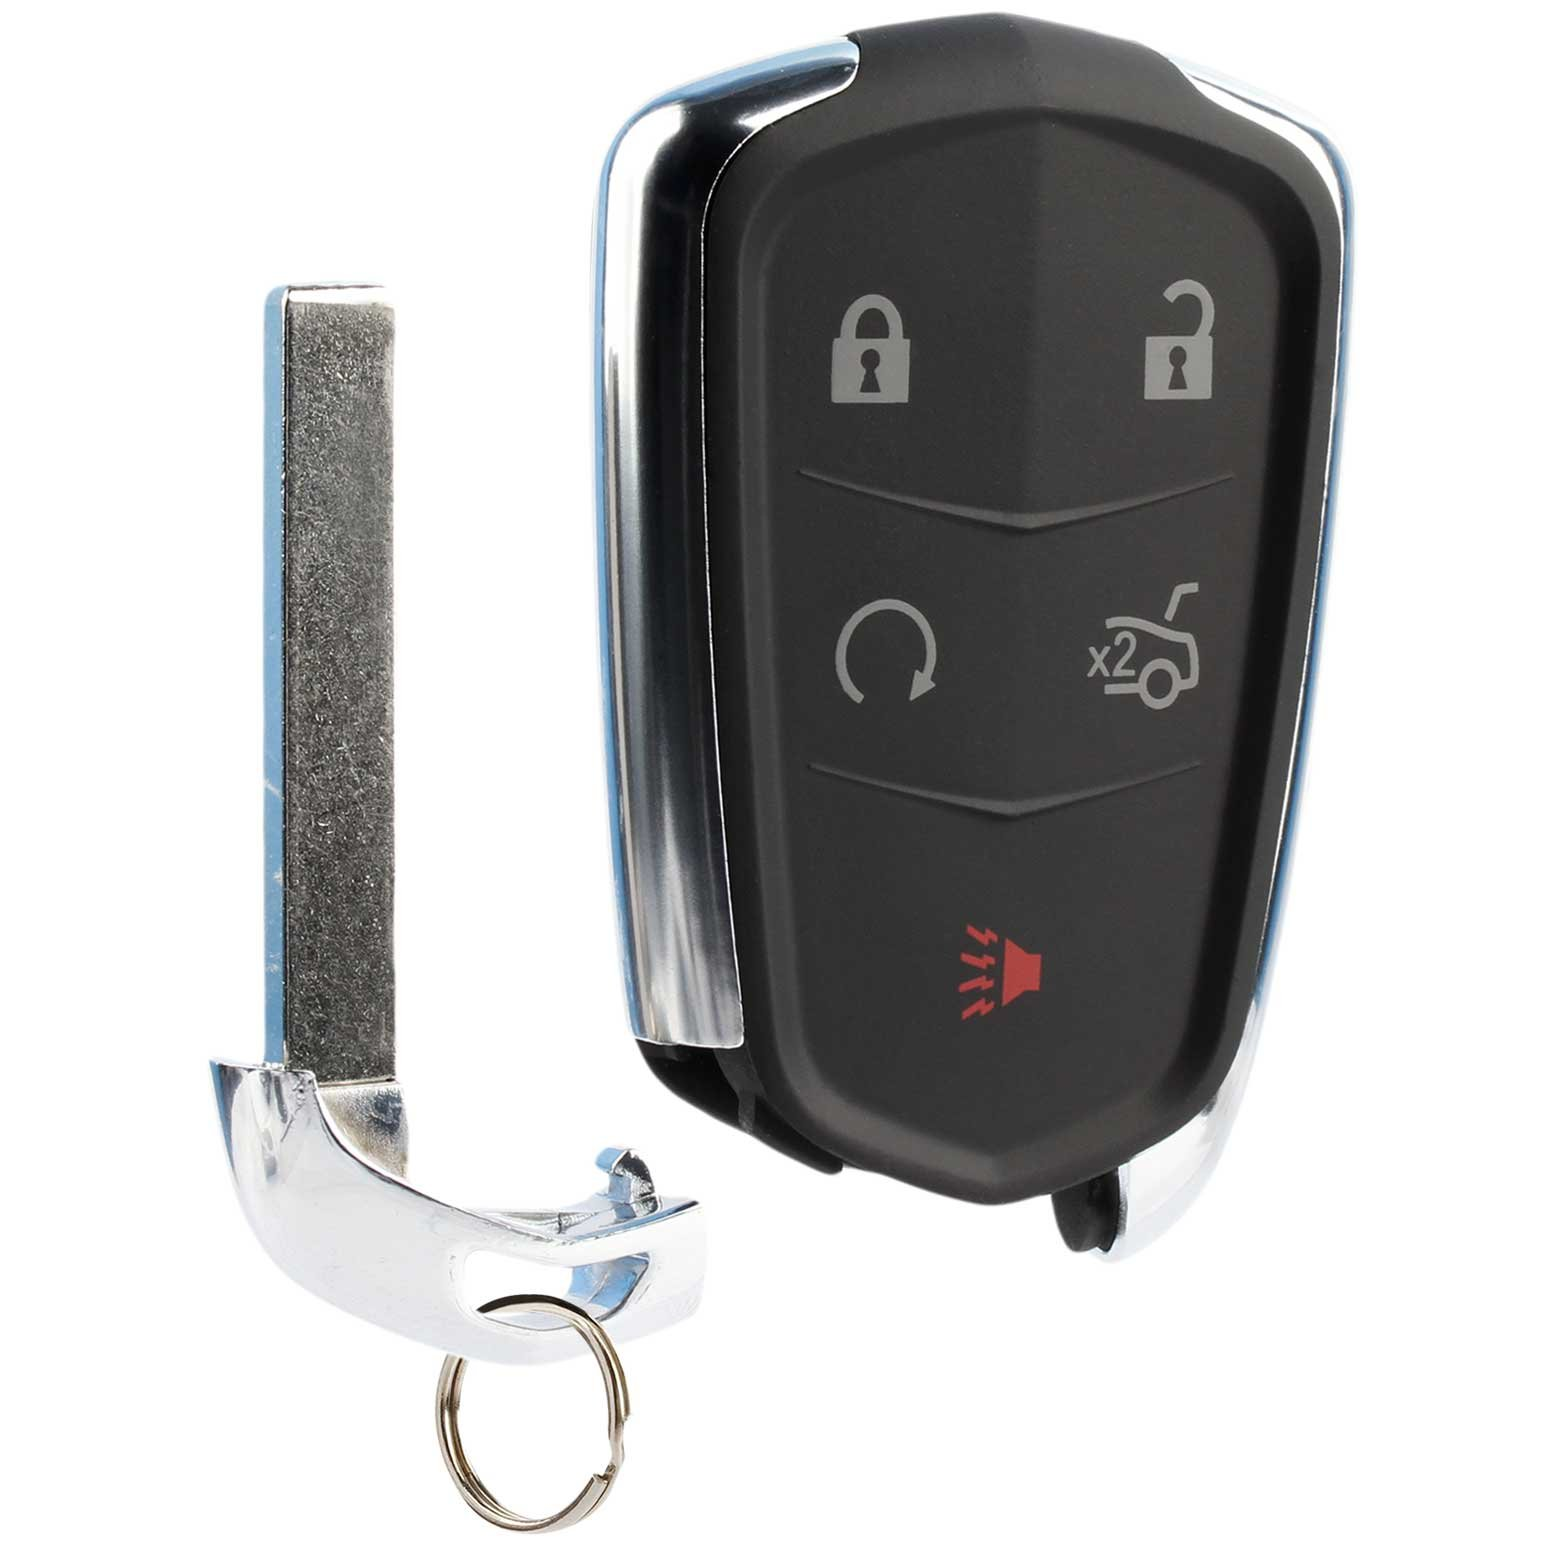 Car Key Fob Keyless Entry Remote fits Cadillac ATS CTS Escalade SRX XTS 2014 2015 2016 2017 (HYQ2AB)